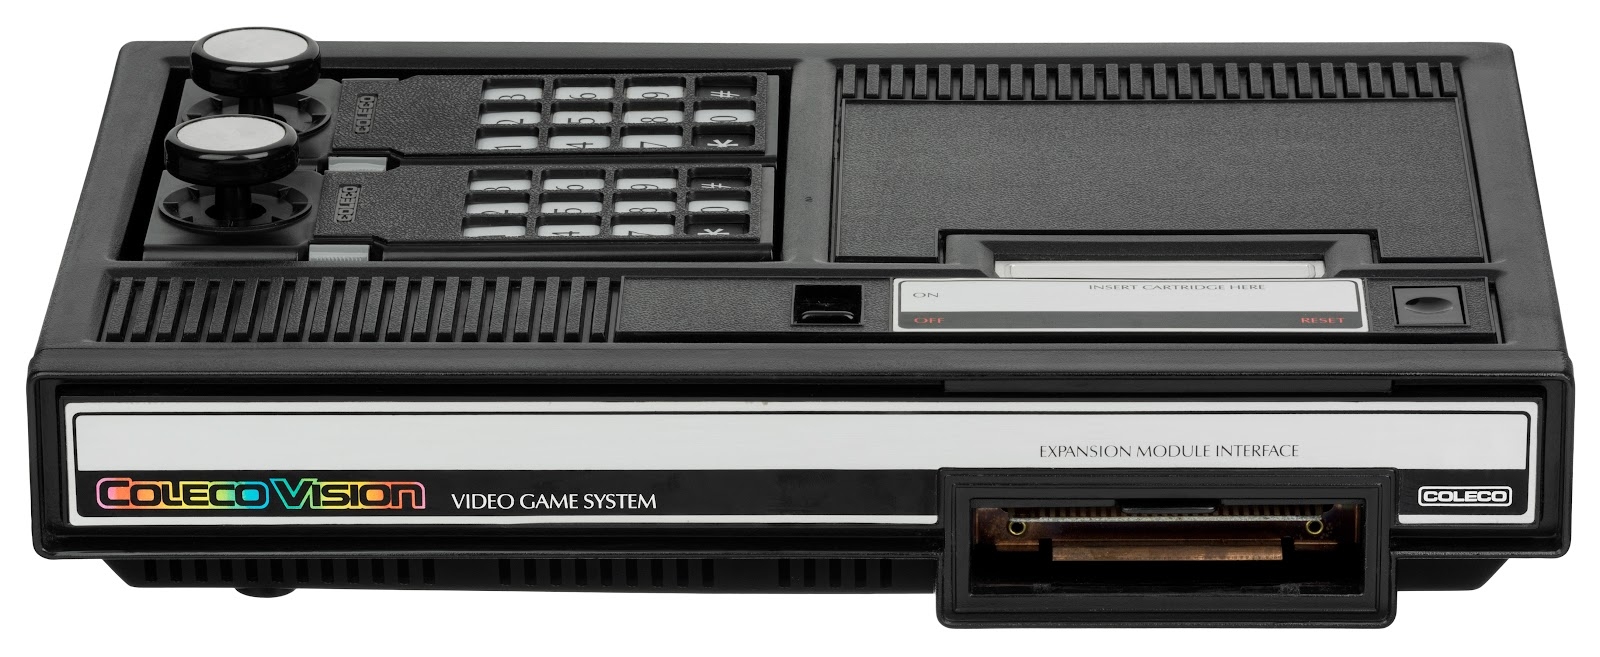 colecovision composite upgrade kit install guide [ 1600 x 657 Pixel ]